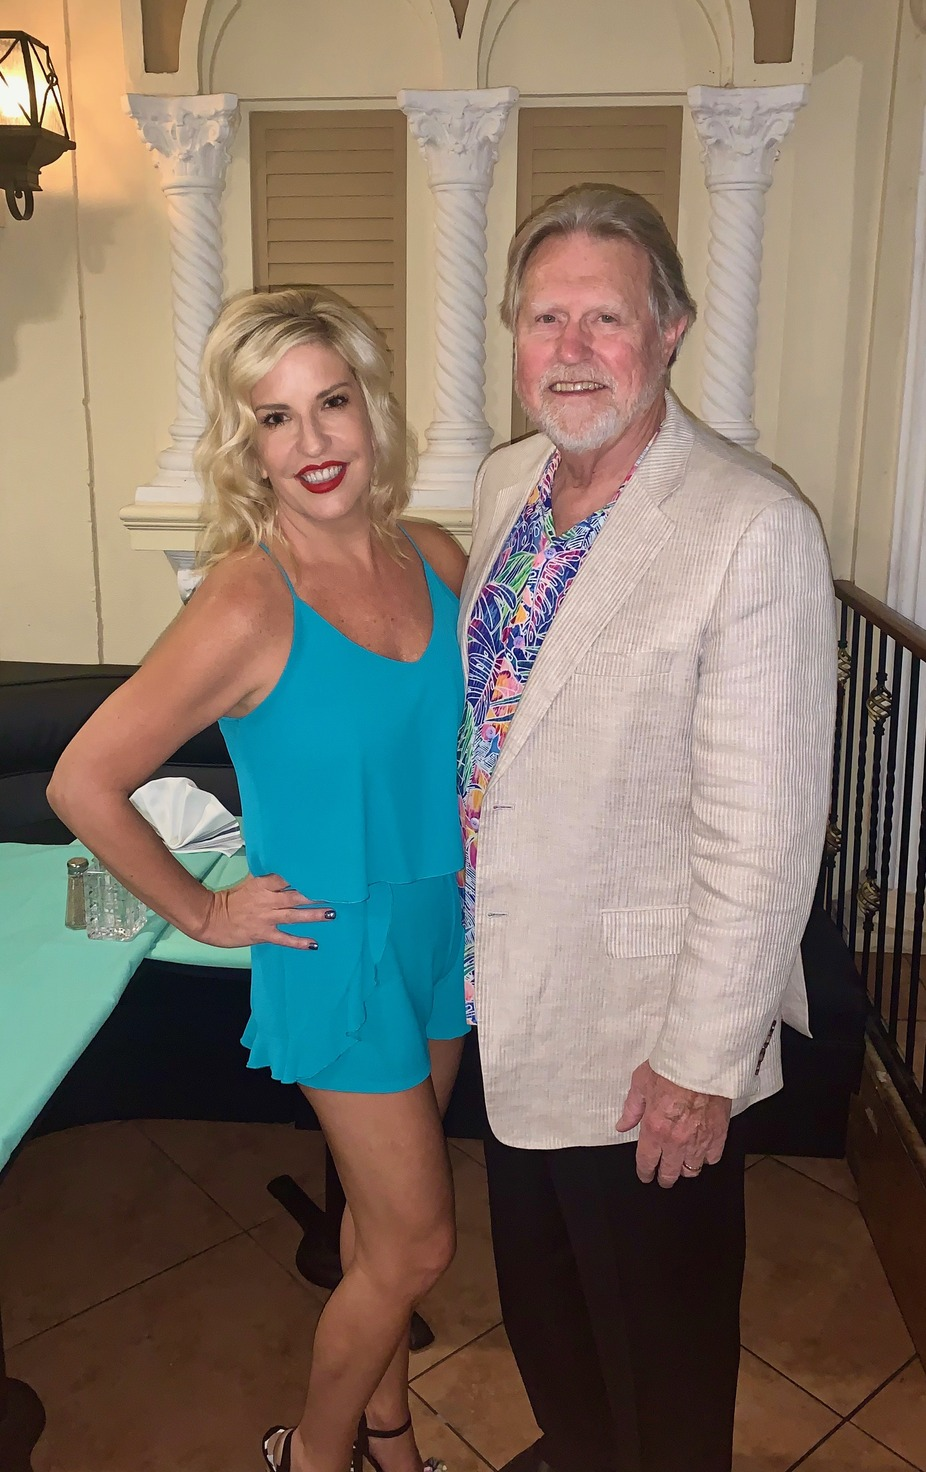 Lili Lewis and Jimmy Vann event photo